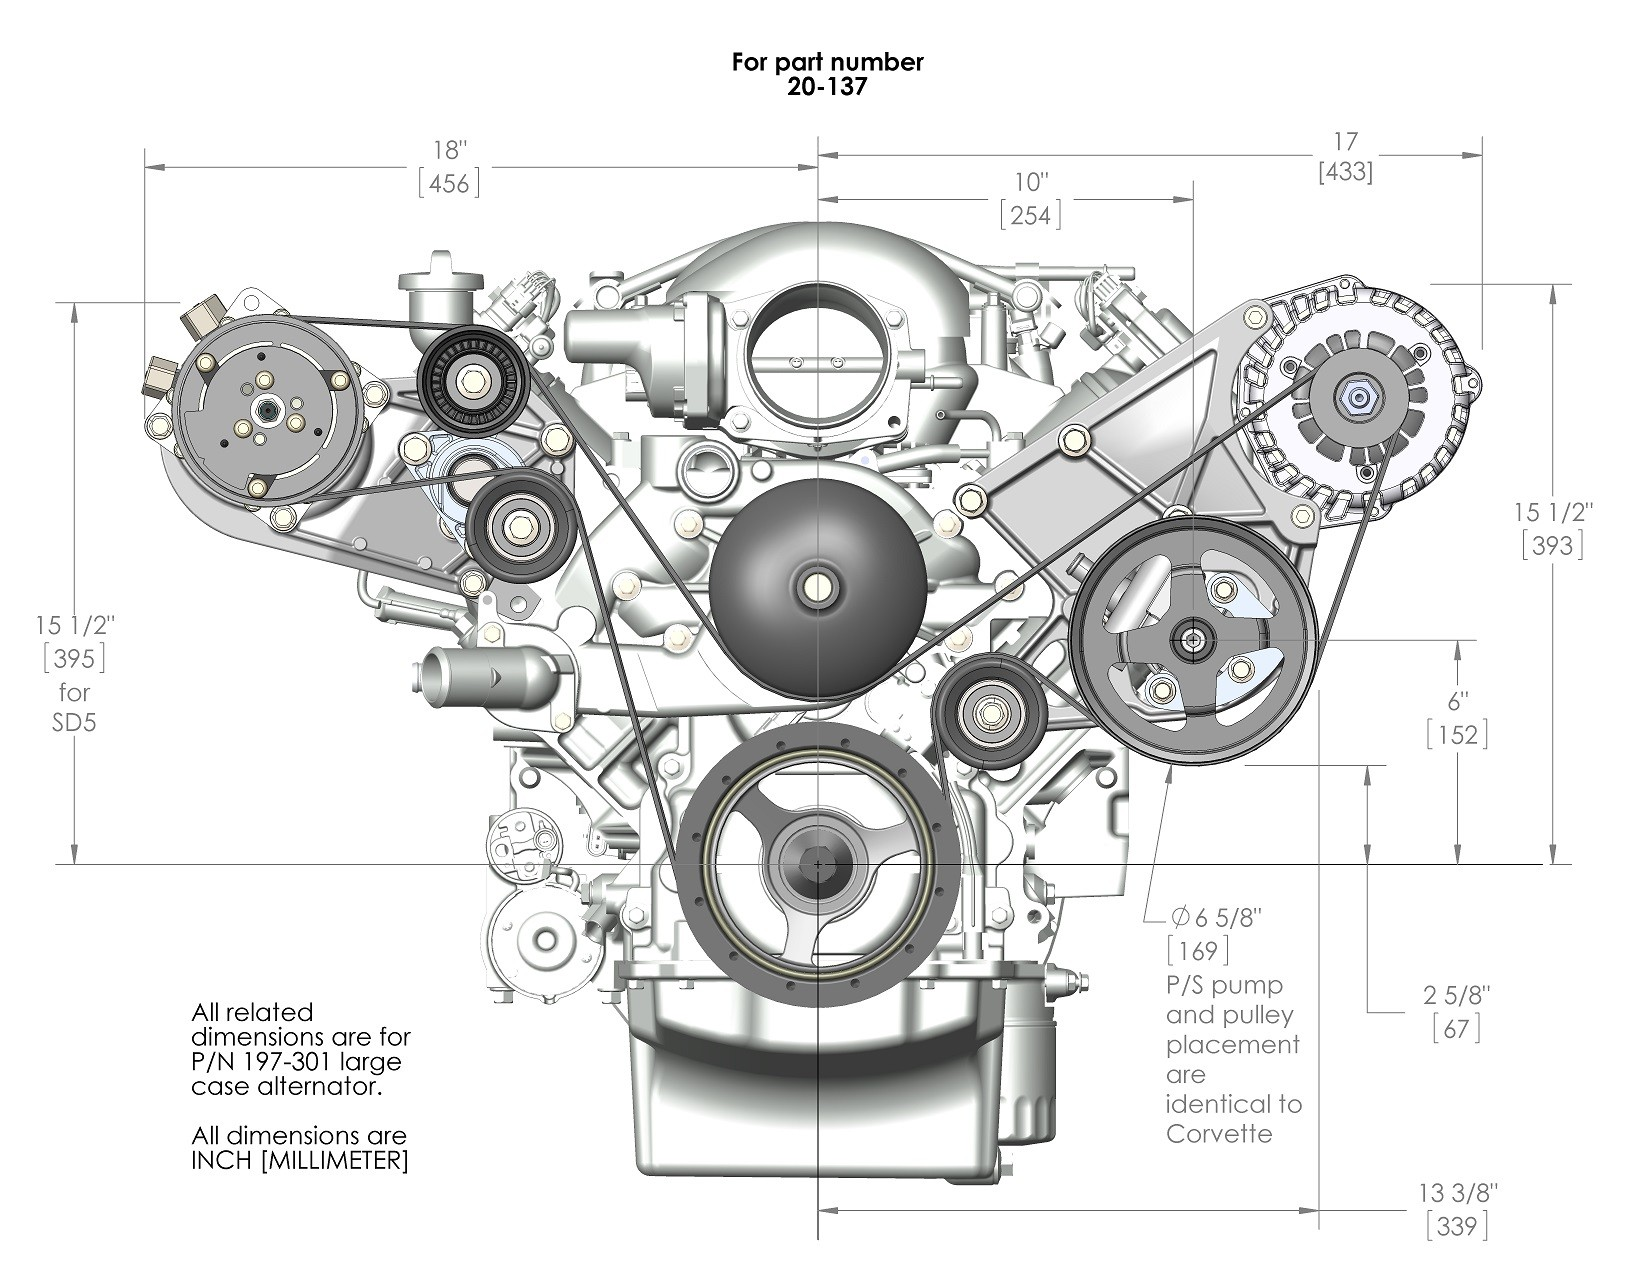 Basic Car Engine Diagram 2015 Mustang 20 137 Dimensions1 16501275 Ls Engines Pinterest Of